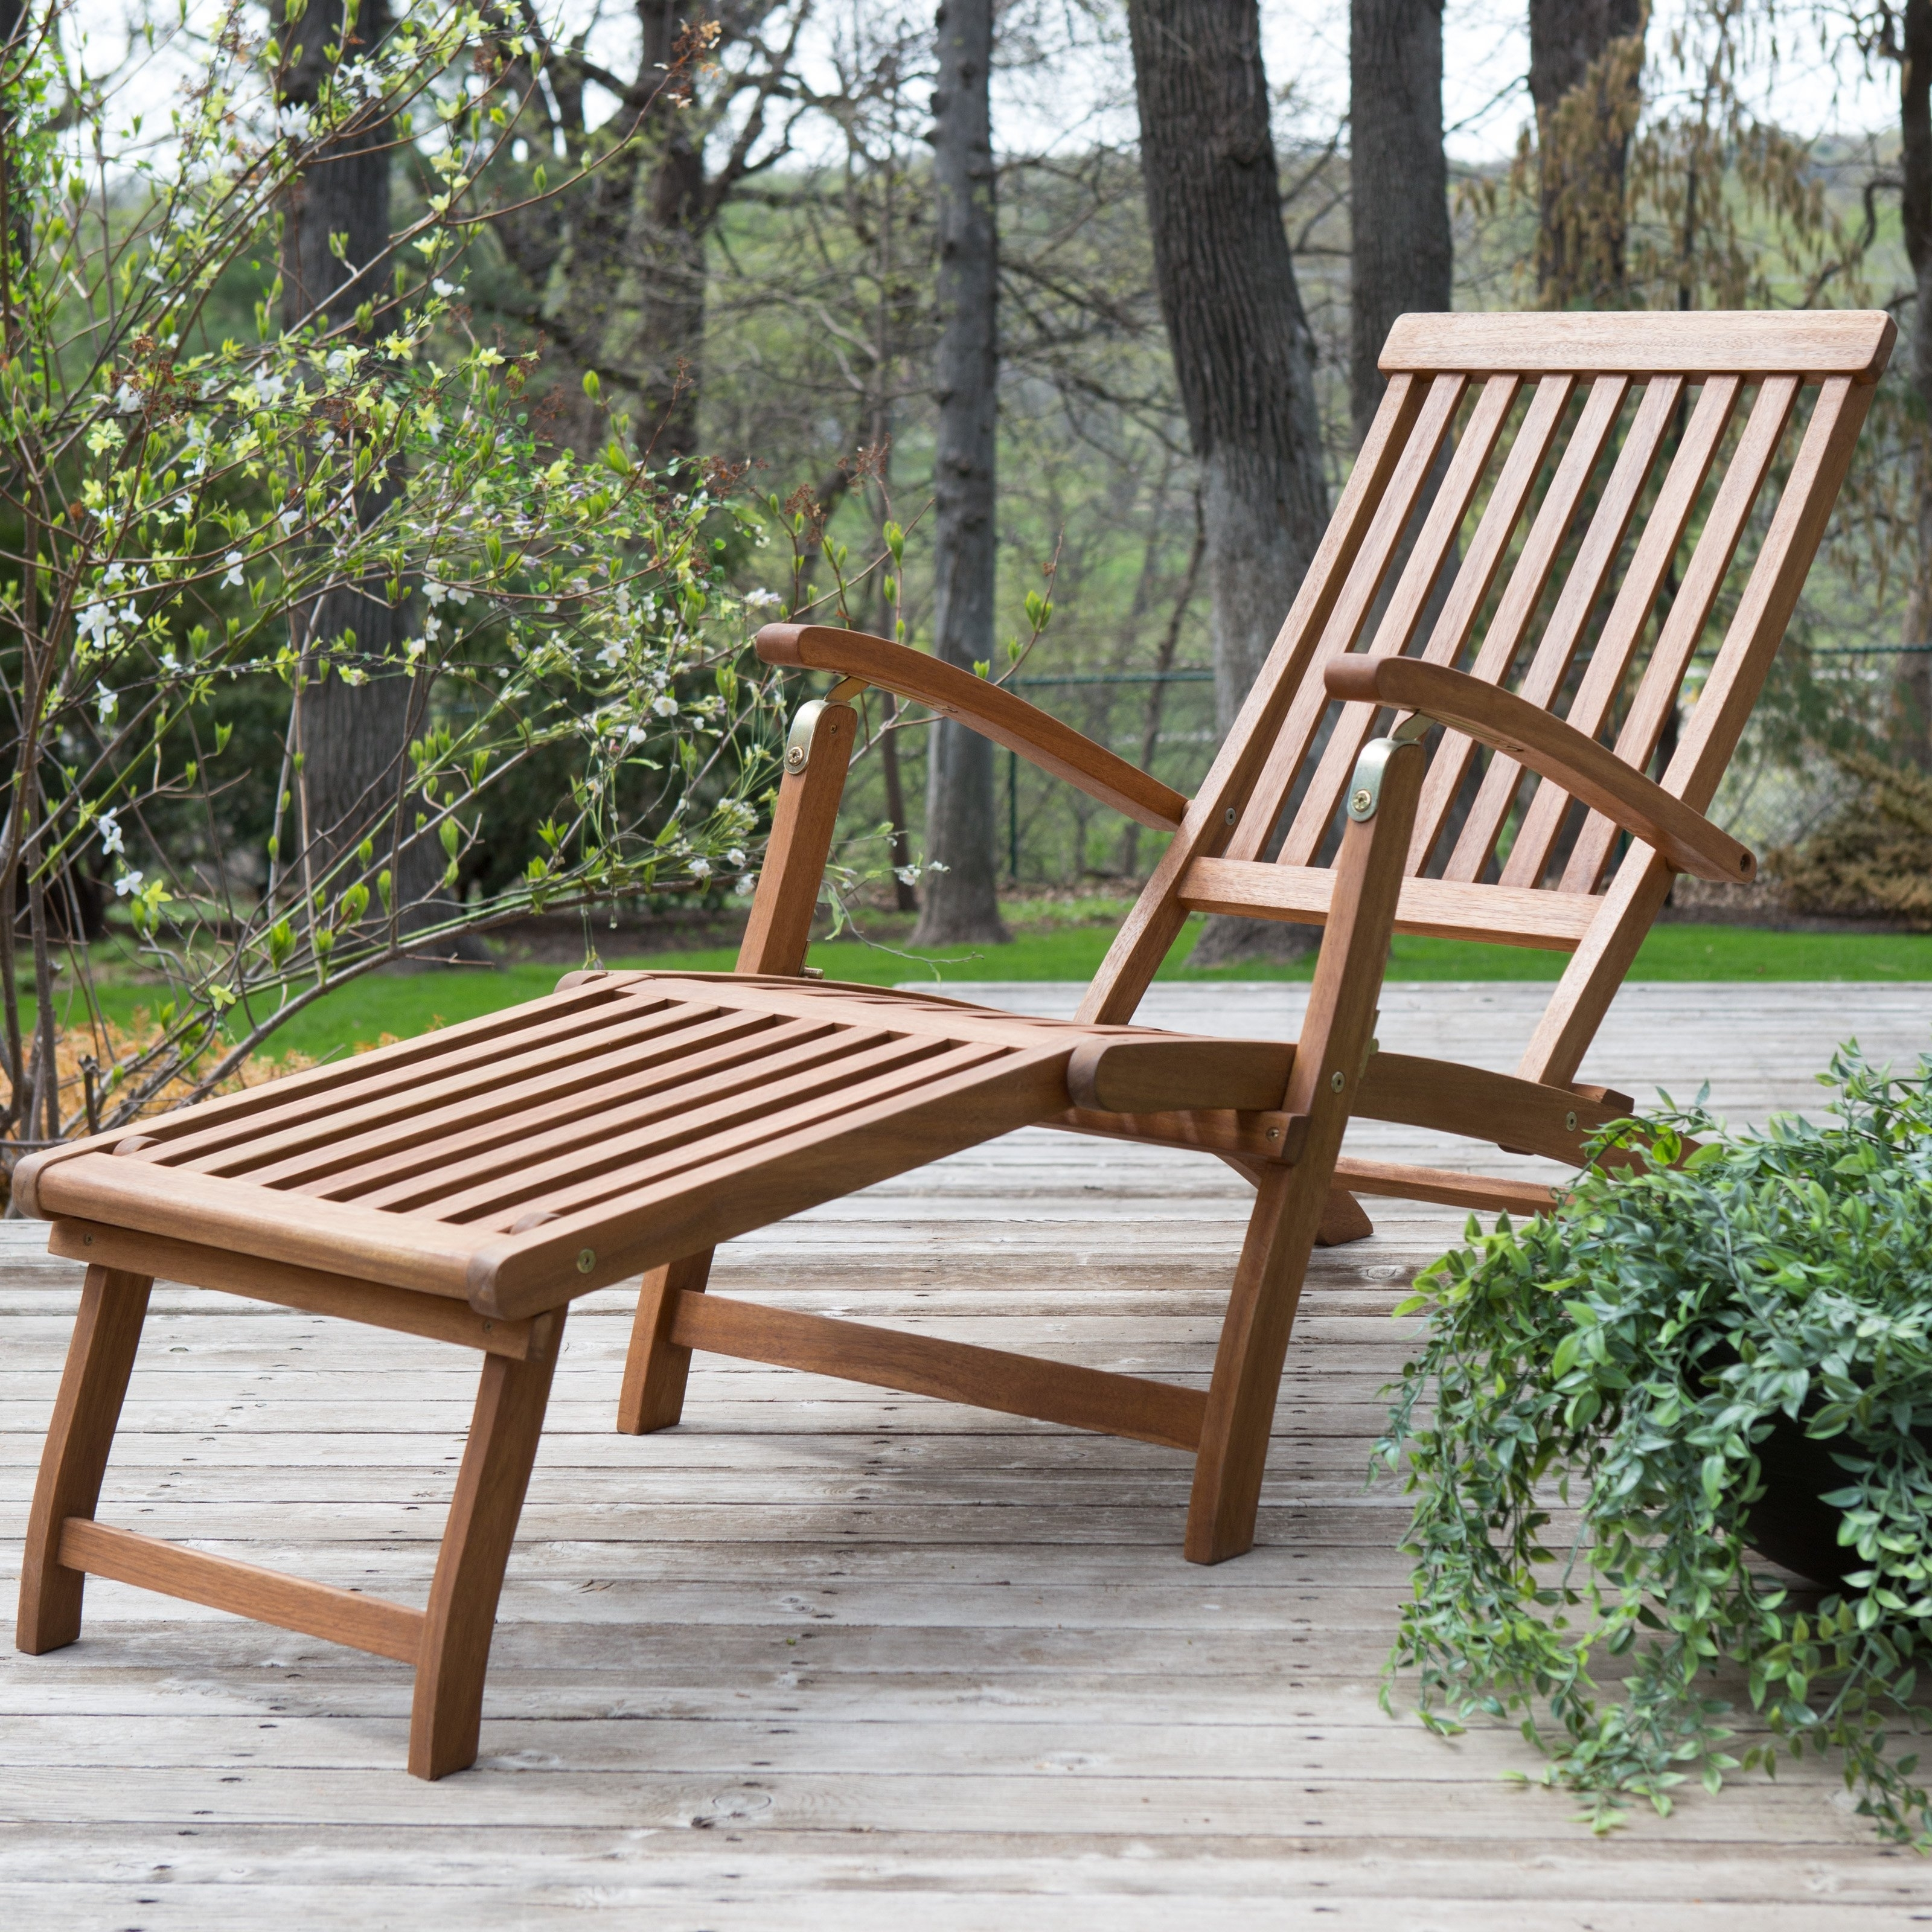 Trendy Wood Chaise Lounges For Best Selling Home Decor Molokini Wood Outdoor Chaise Lounge—Set Of (View 11 of 15)